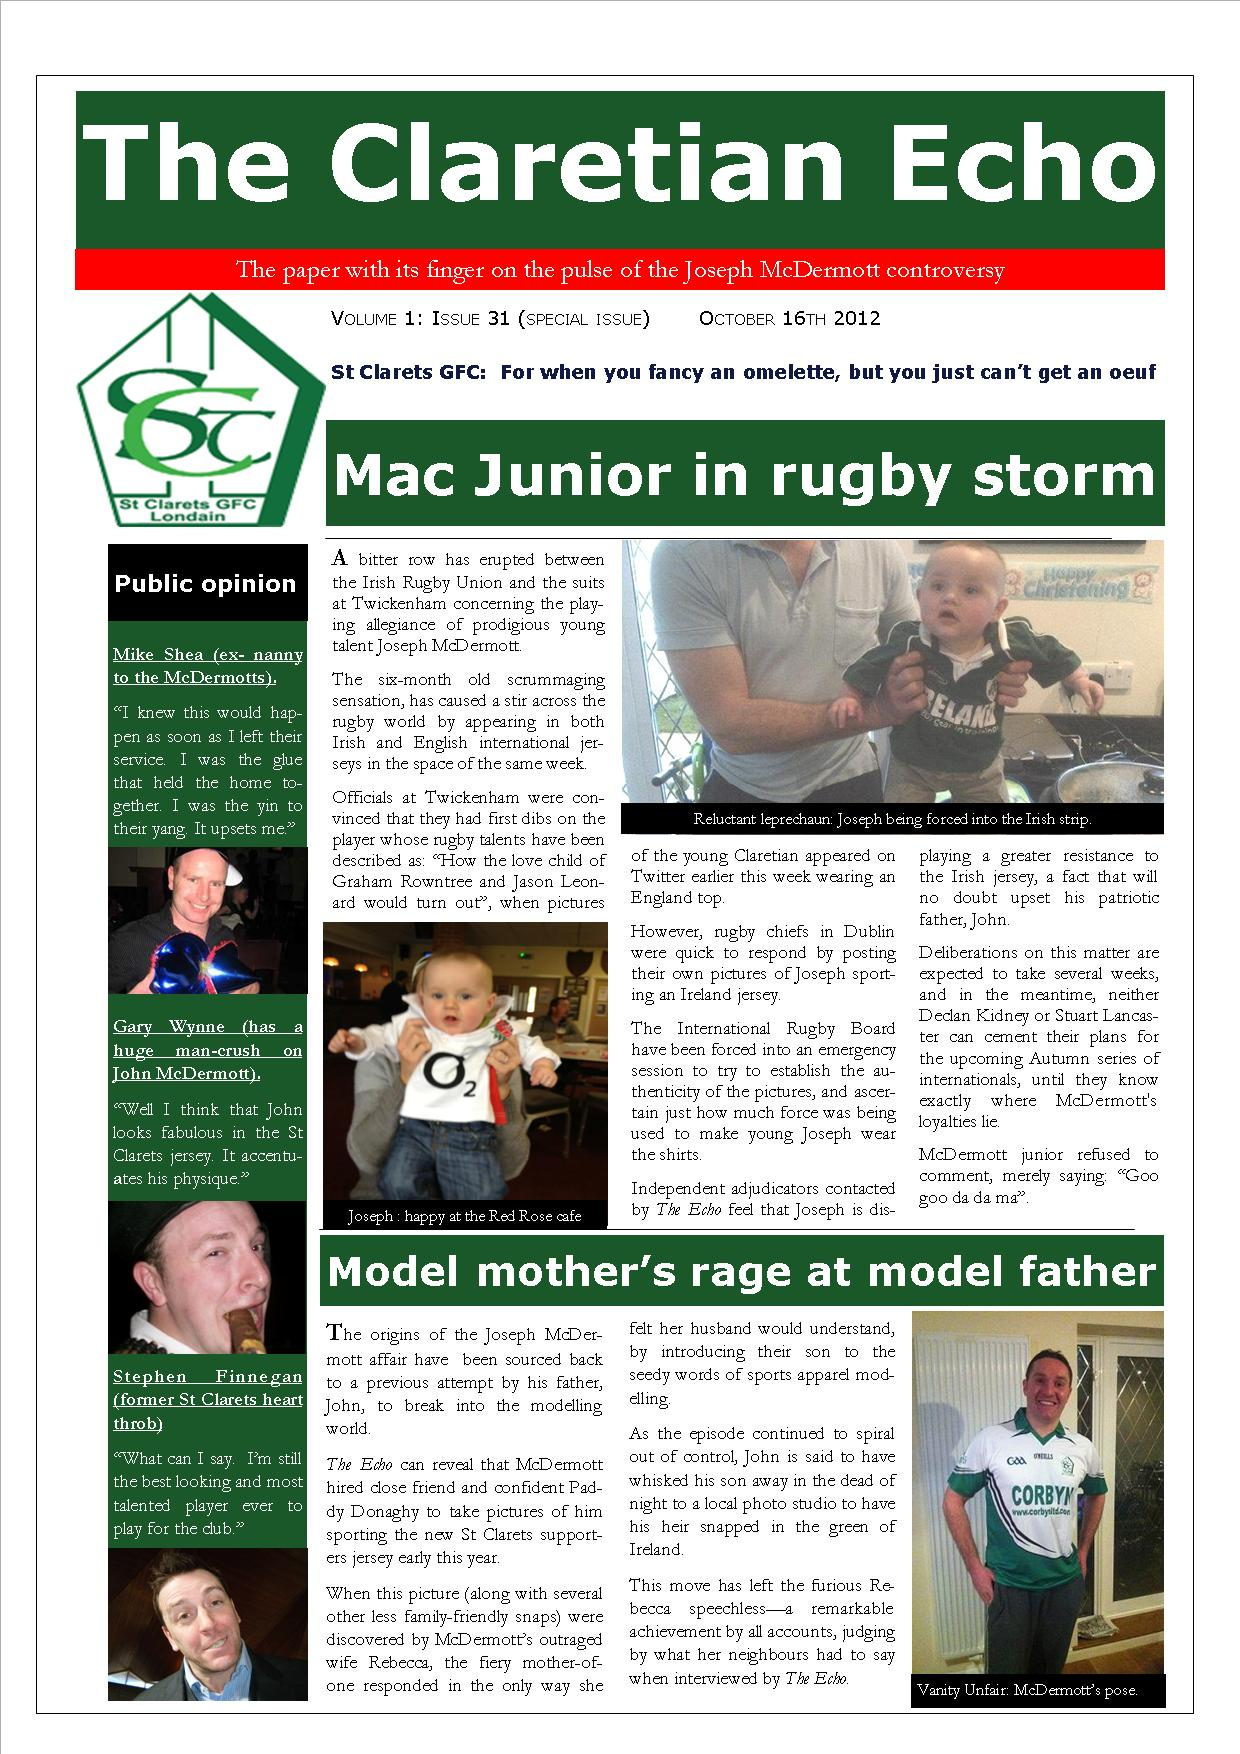 Claretian Echo Issue 31 - Special Edition. The weekly newsletter from St Clarets GFC in London. London's best GAA club. A Gaelic football club to be proud of.